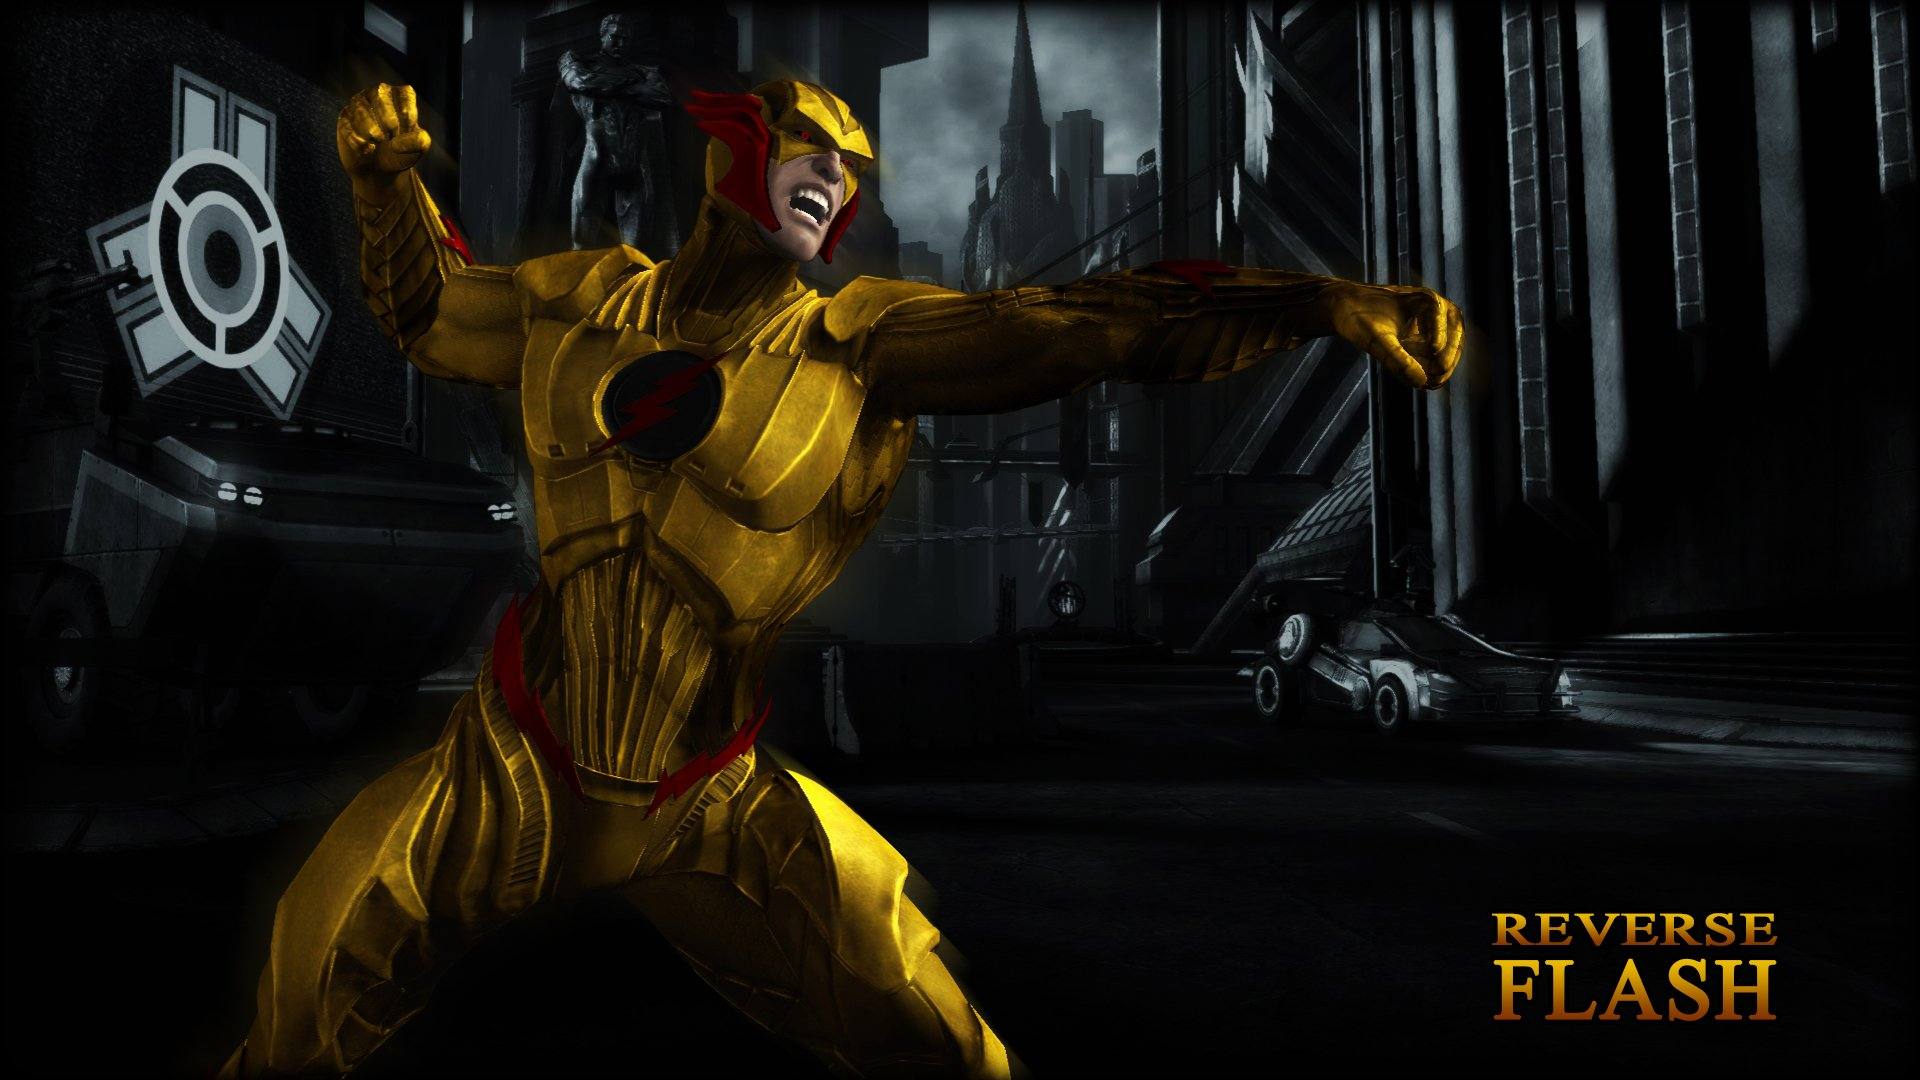 48 Reverse Flash Hd Wallpaper On Wallpapersafari